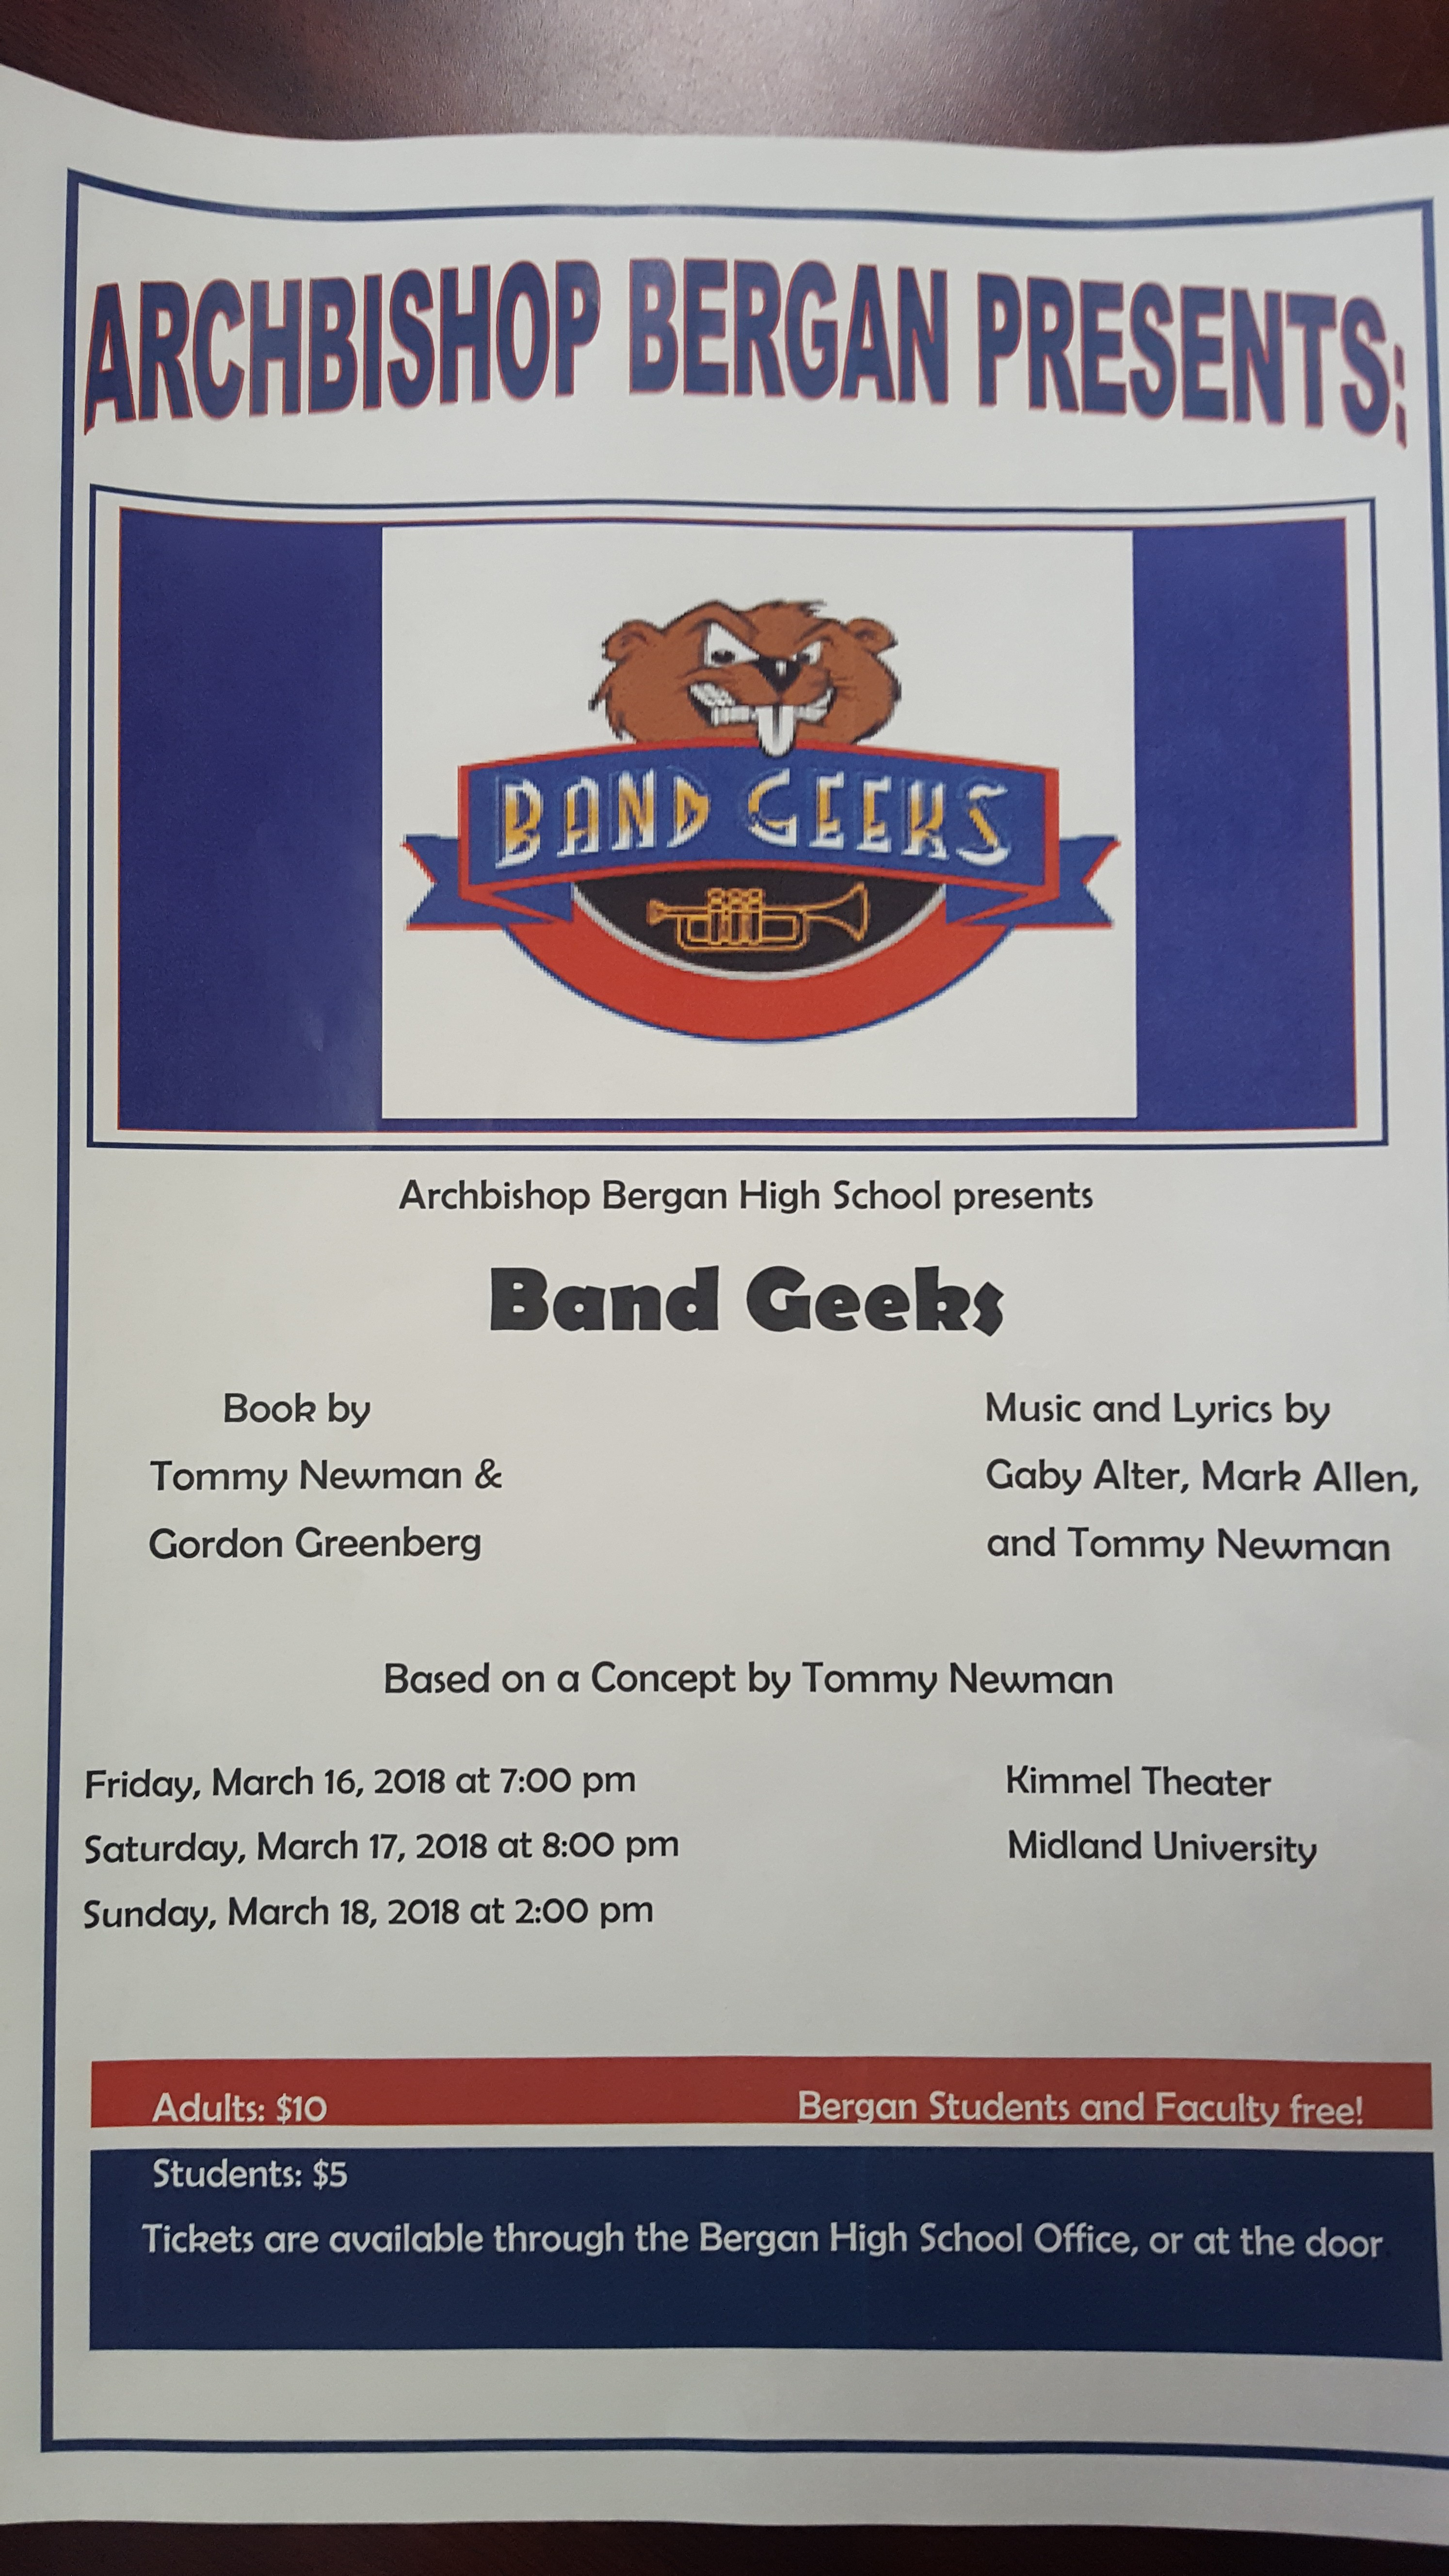 Bergan Presents the Musical, Band Geeks